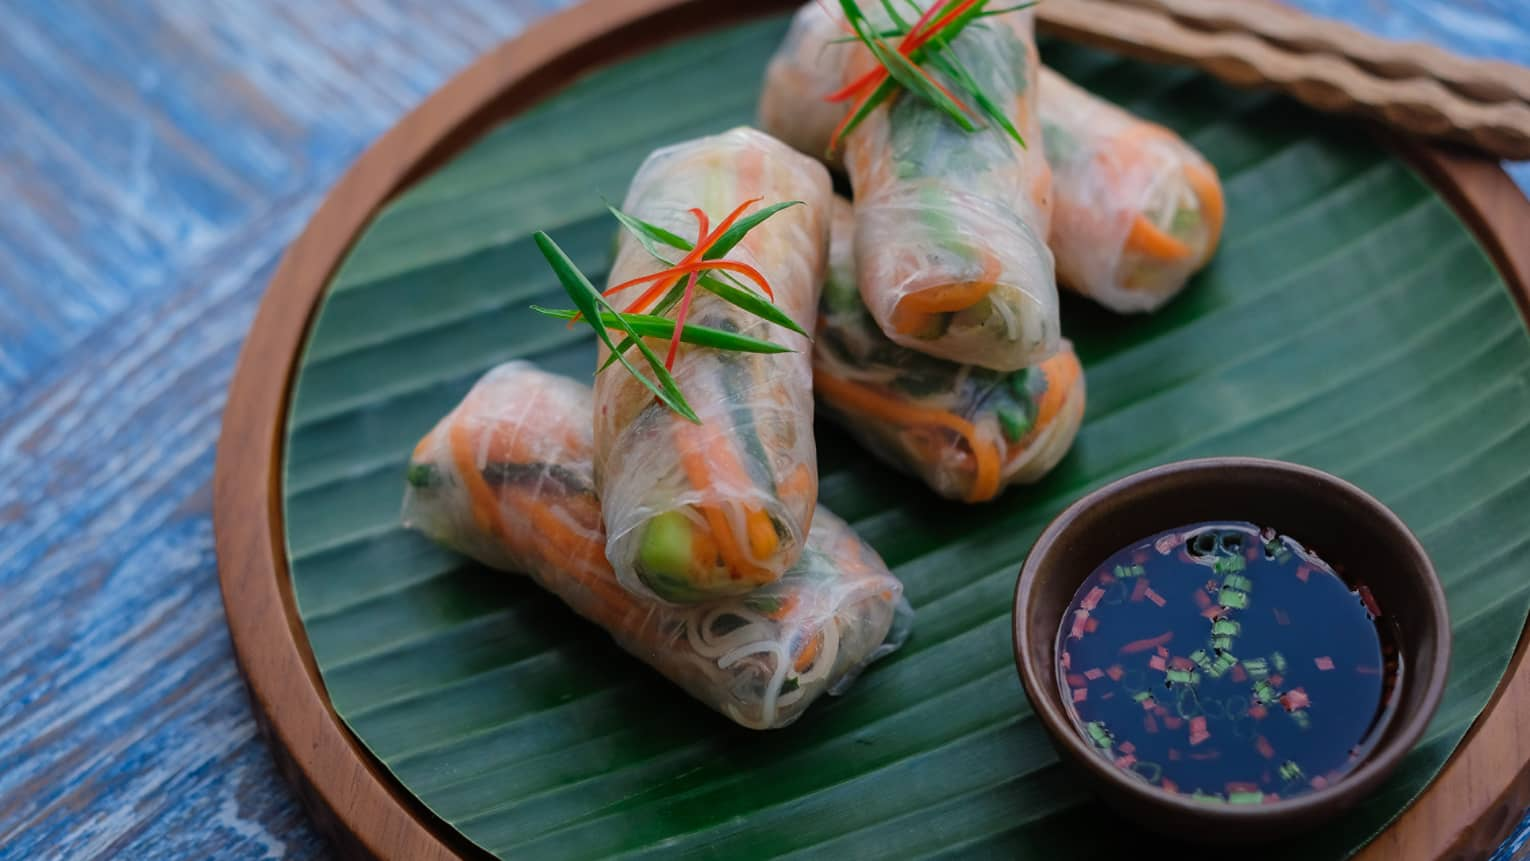 Fresh springrolls topped with a green herb on a wooden plate, along with a dish of fish sauce and wooden chopsticks